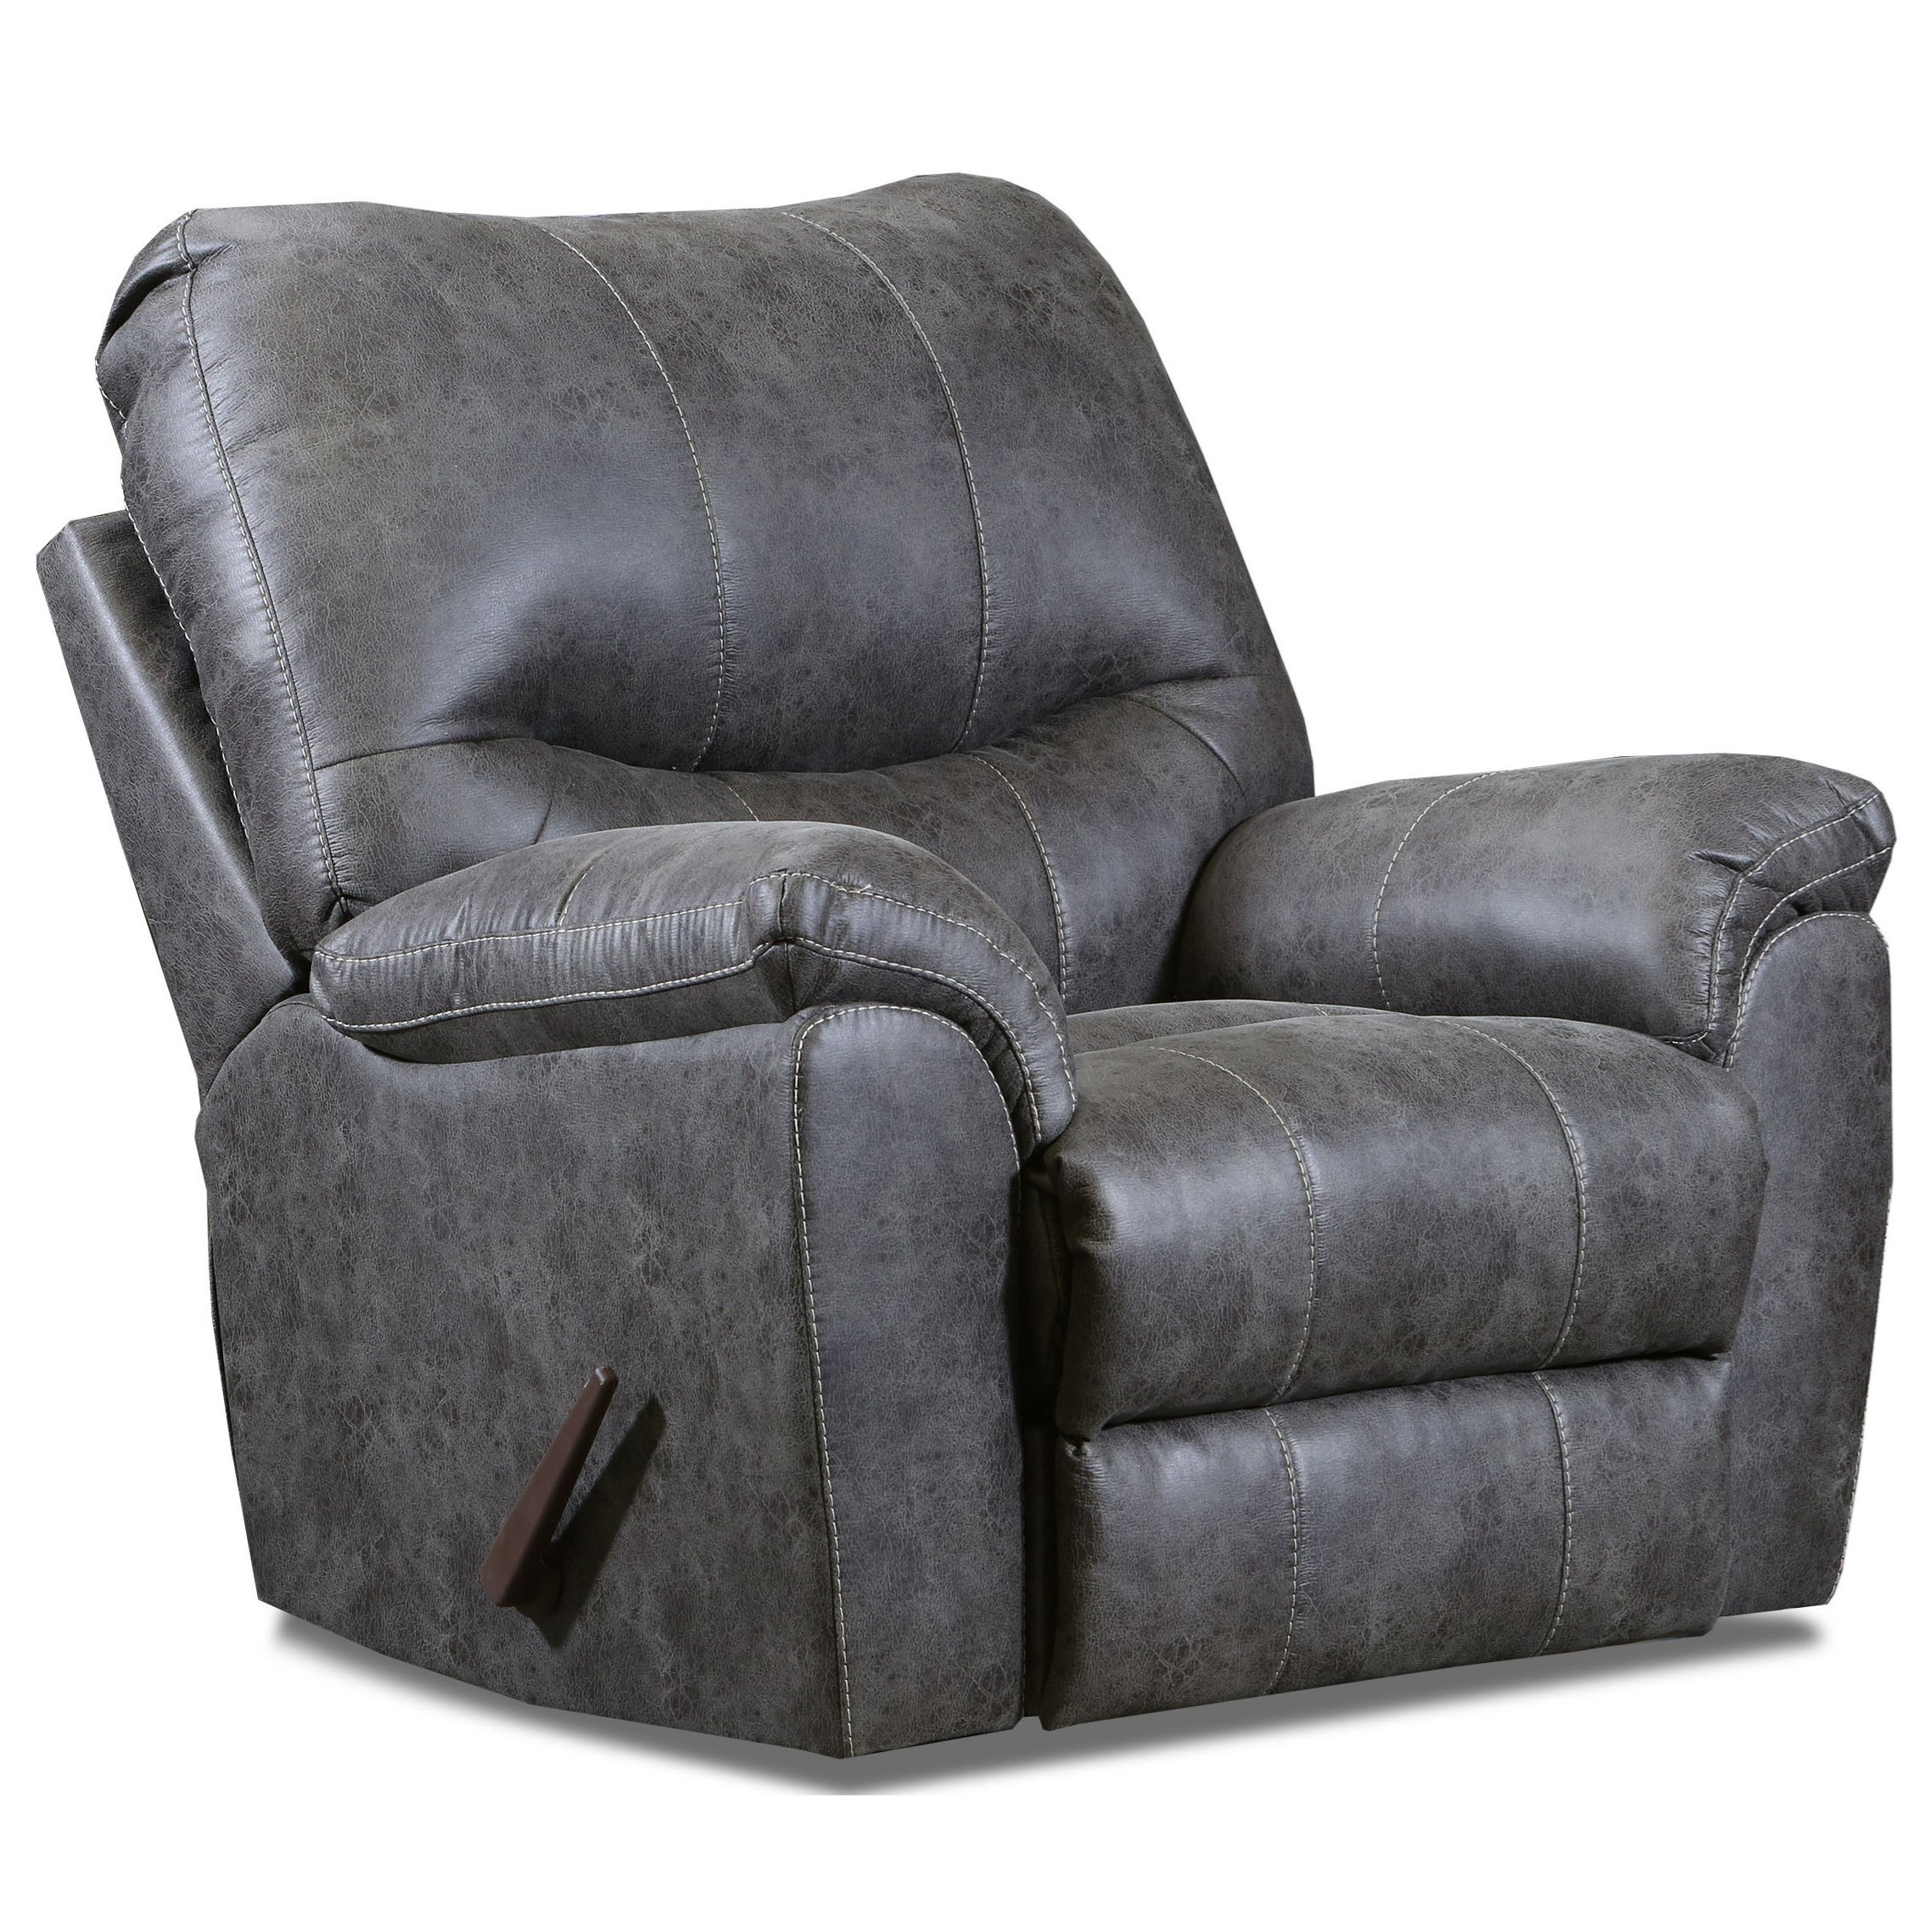 1780 Recliner by Peak Living at Prime Brothers Furniture